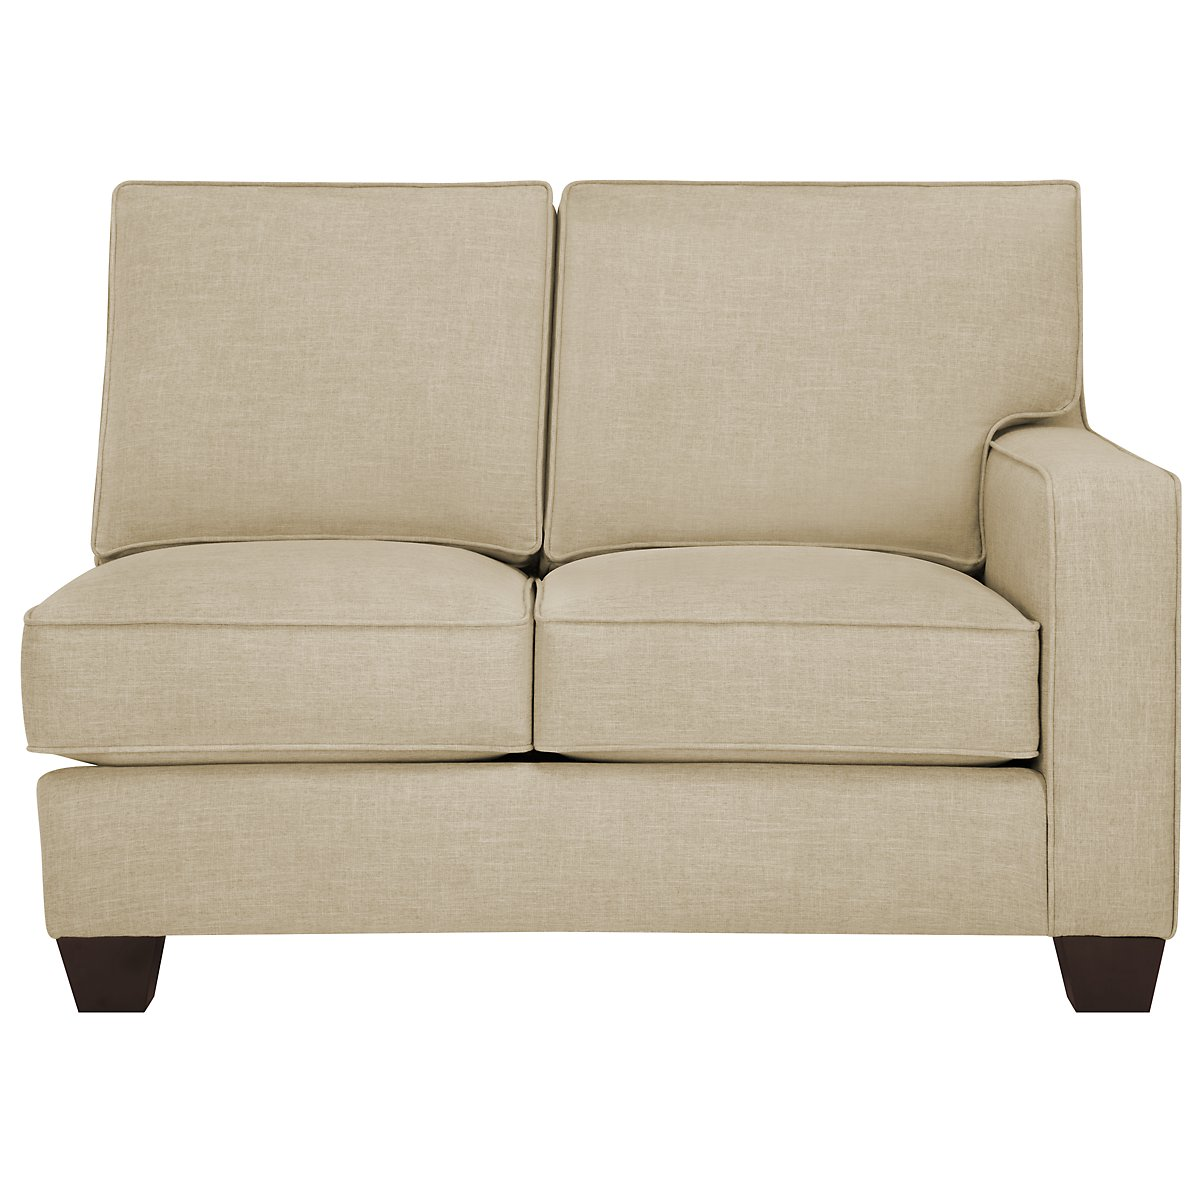 City furniture york beige fabric small left chaise sectional for Beige sofa with chaise